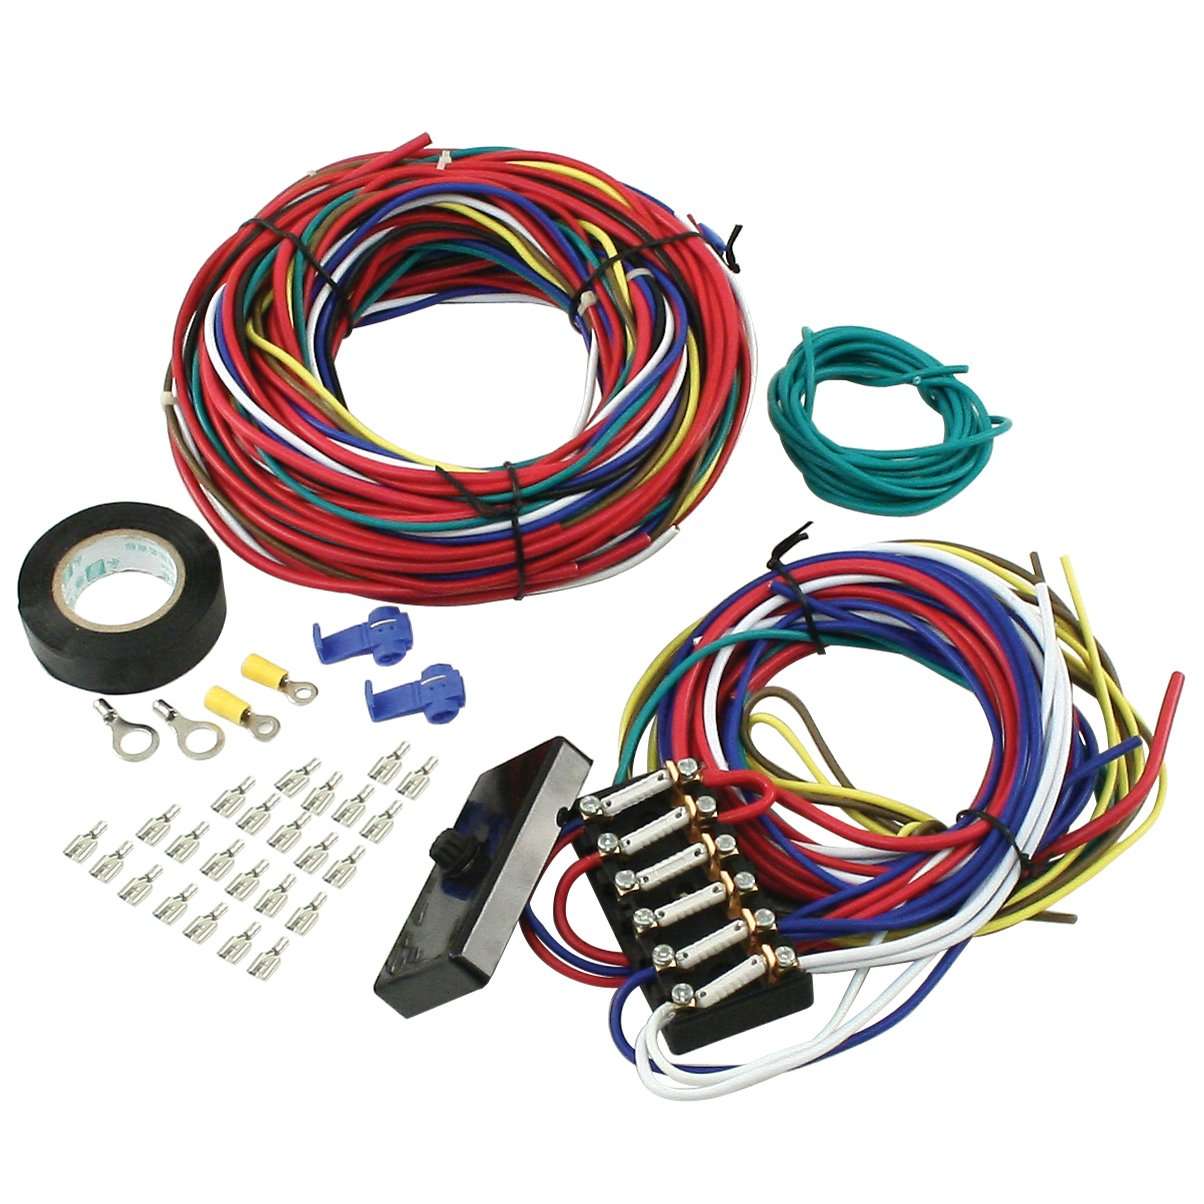 712Fyt3MSiL._SL1204_ amazon com empi 00 9466 0 wire loom kit, vw buggy, sand rail sand rail wiring harness at soozxer.org